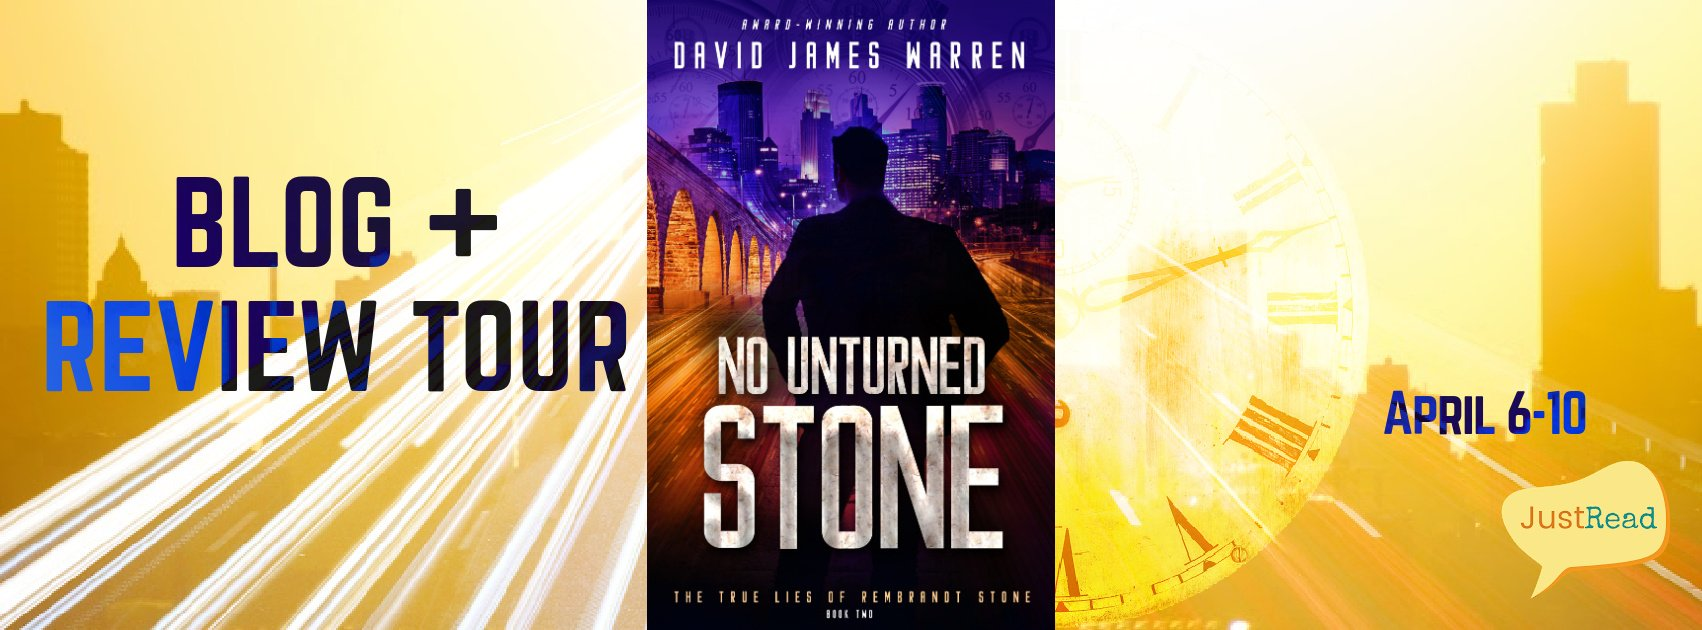 Welcome to the No Unturned Stone Blog + Review Tour & Giveaway!